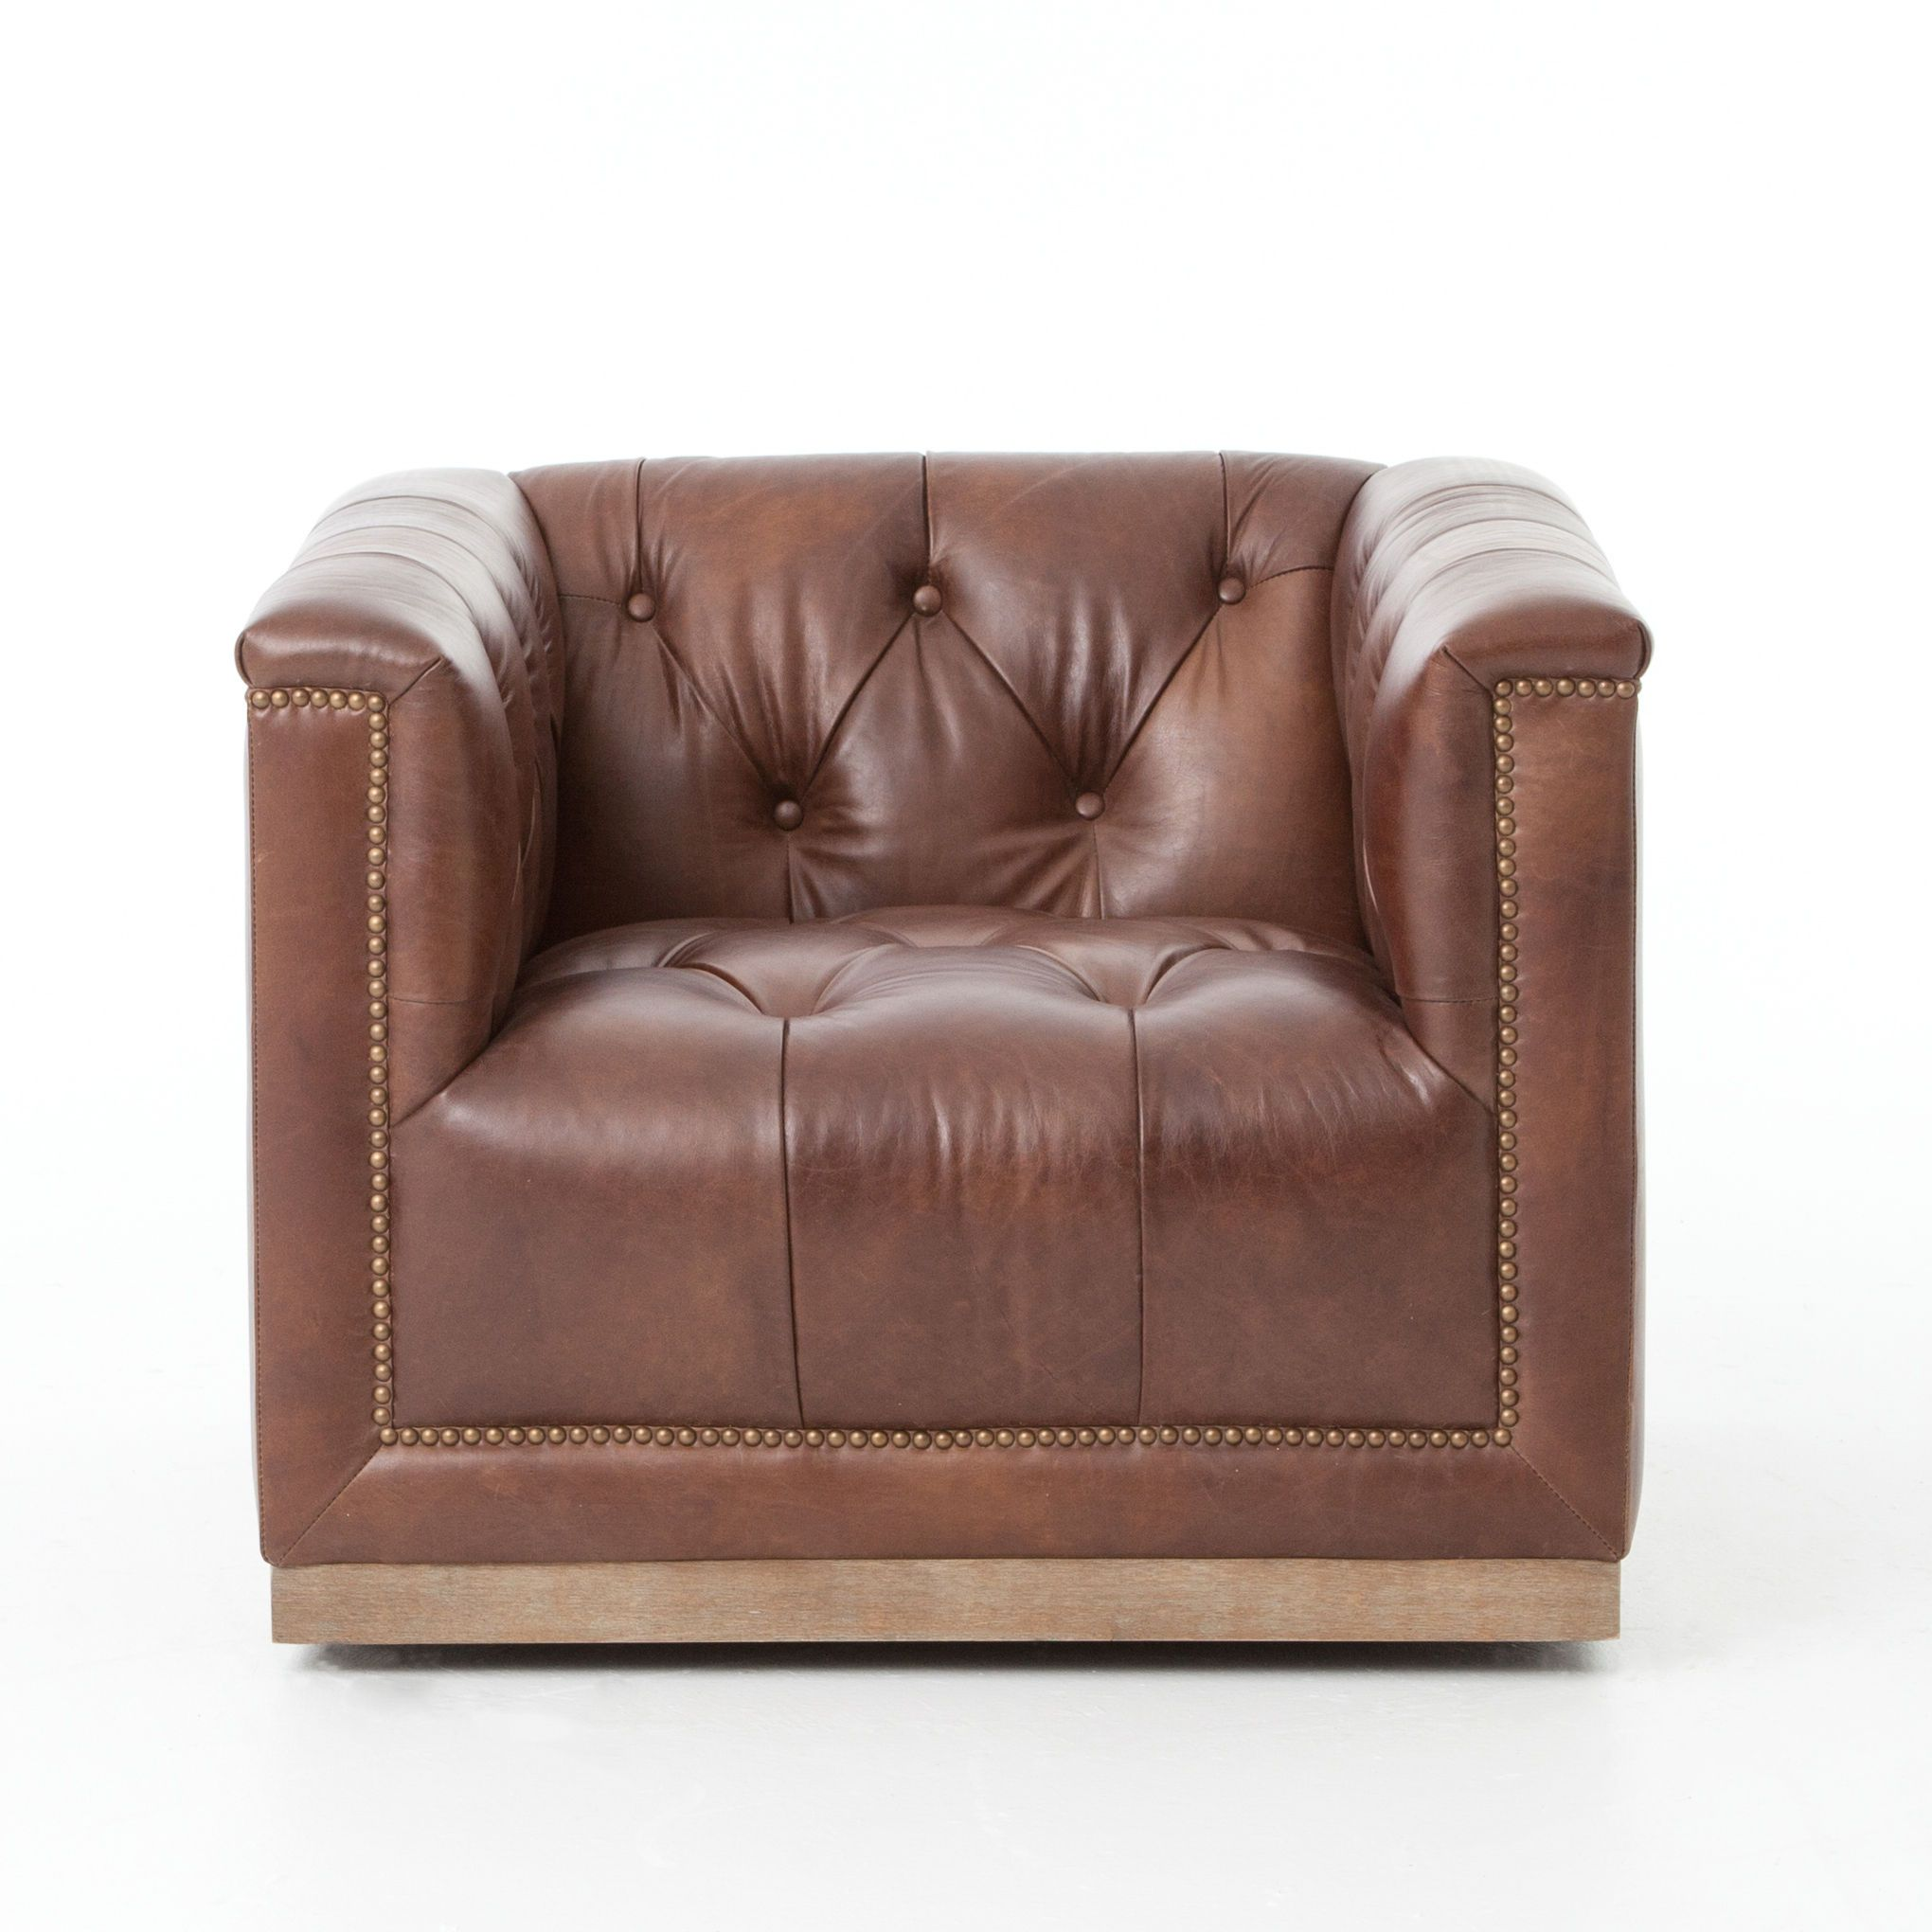 Swivel Club Chairs Living Room Living Room Maxx Swivel Chair Antique Whisky Leather Boylston